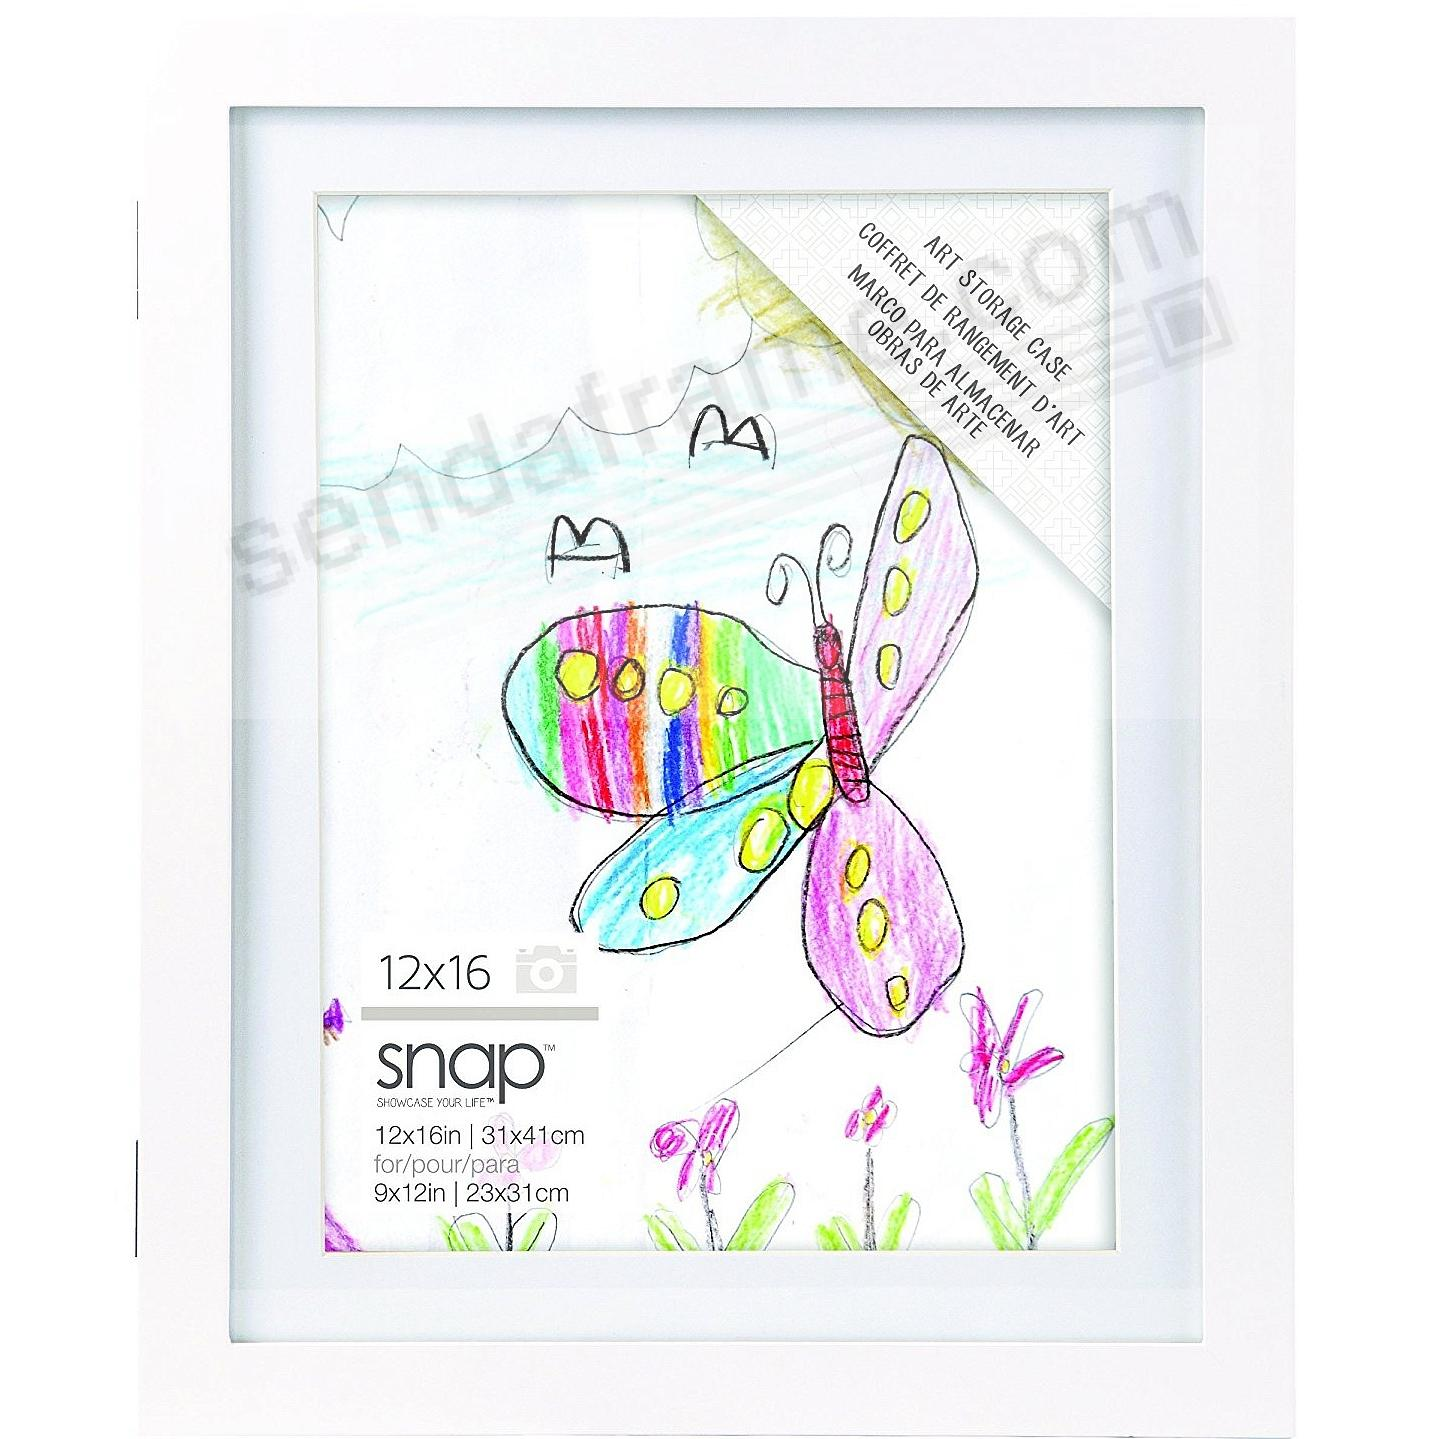 Art Display Case12x16/9x12 White Wood frame by SNAP®